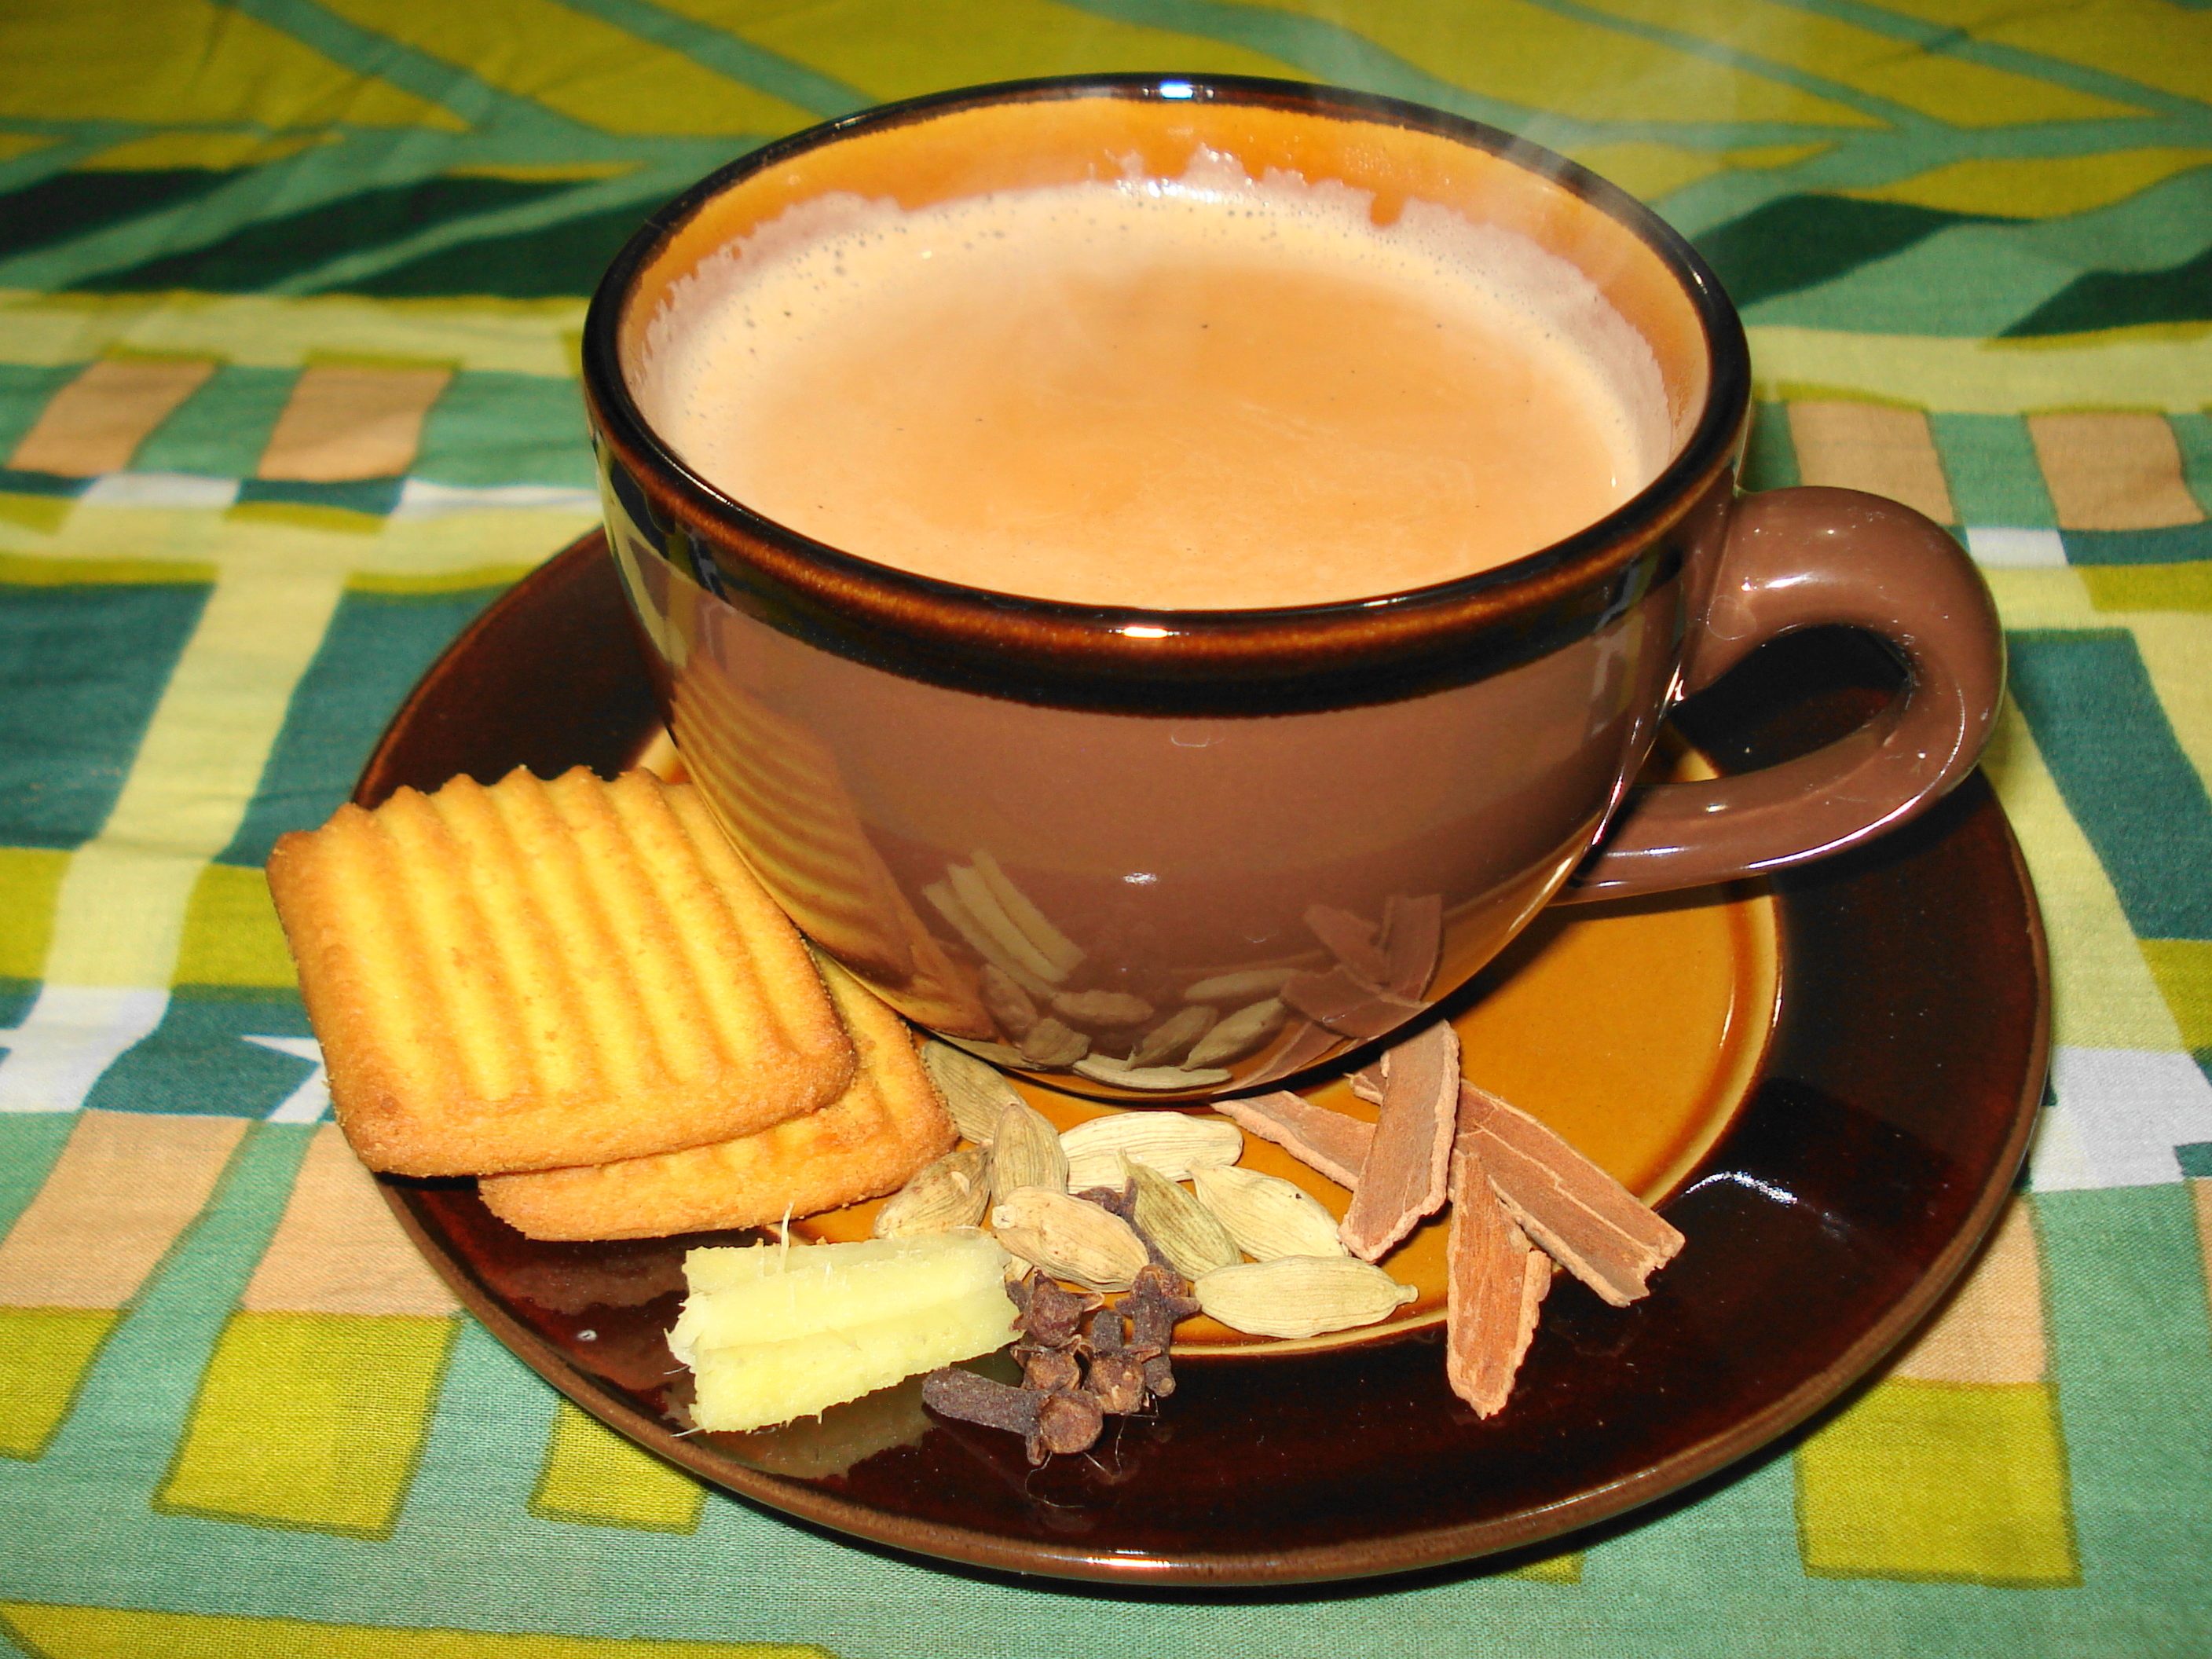 File:Masala Chai.JPG - Wikimedia Commons